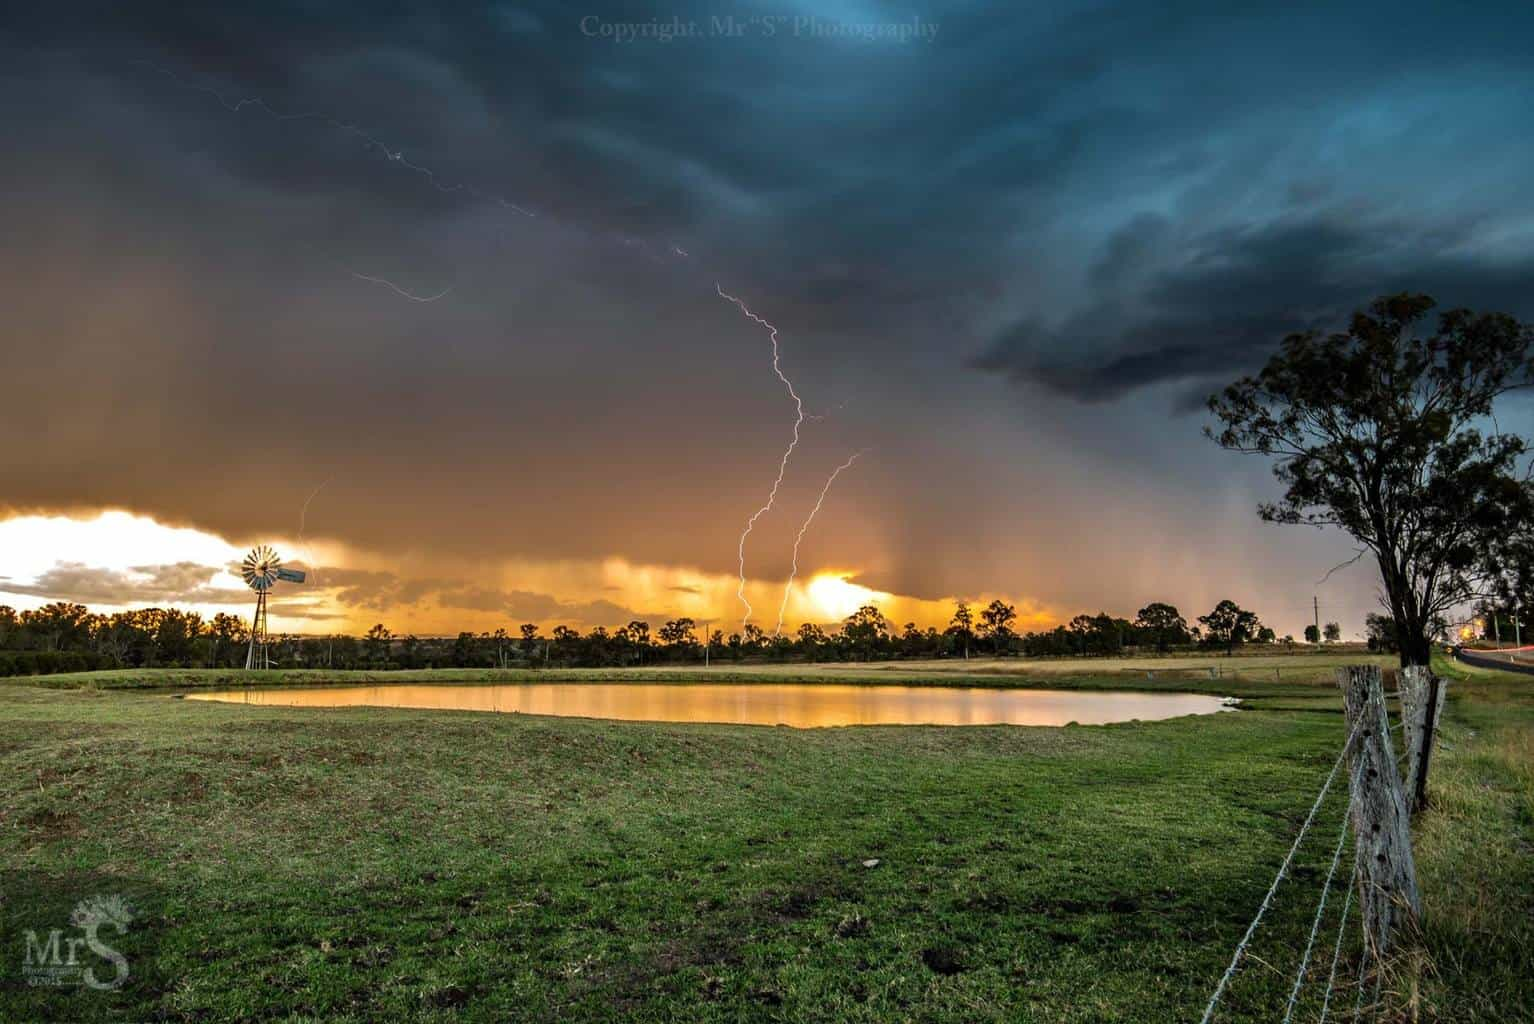 Another fav shot from 1st Oct 2015 at Willowbank Qld Australia. The clouds danced, the bolt's struck and I smiled